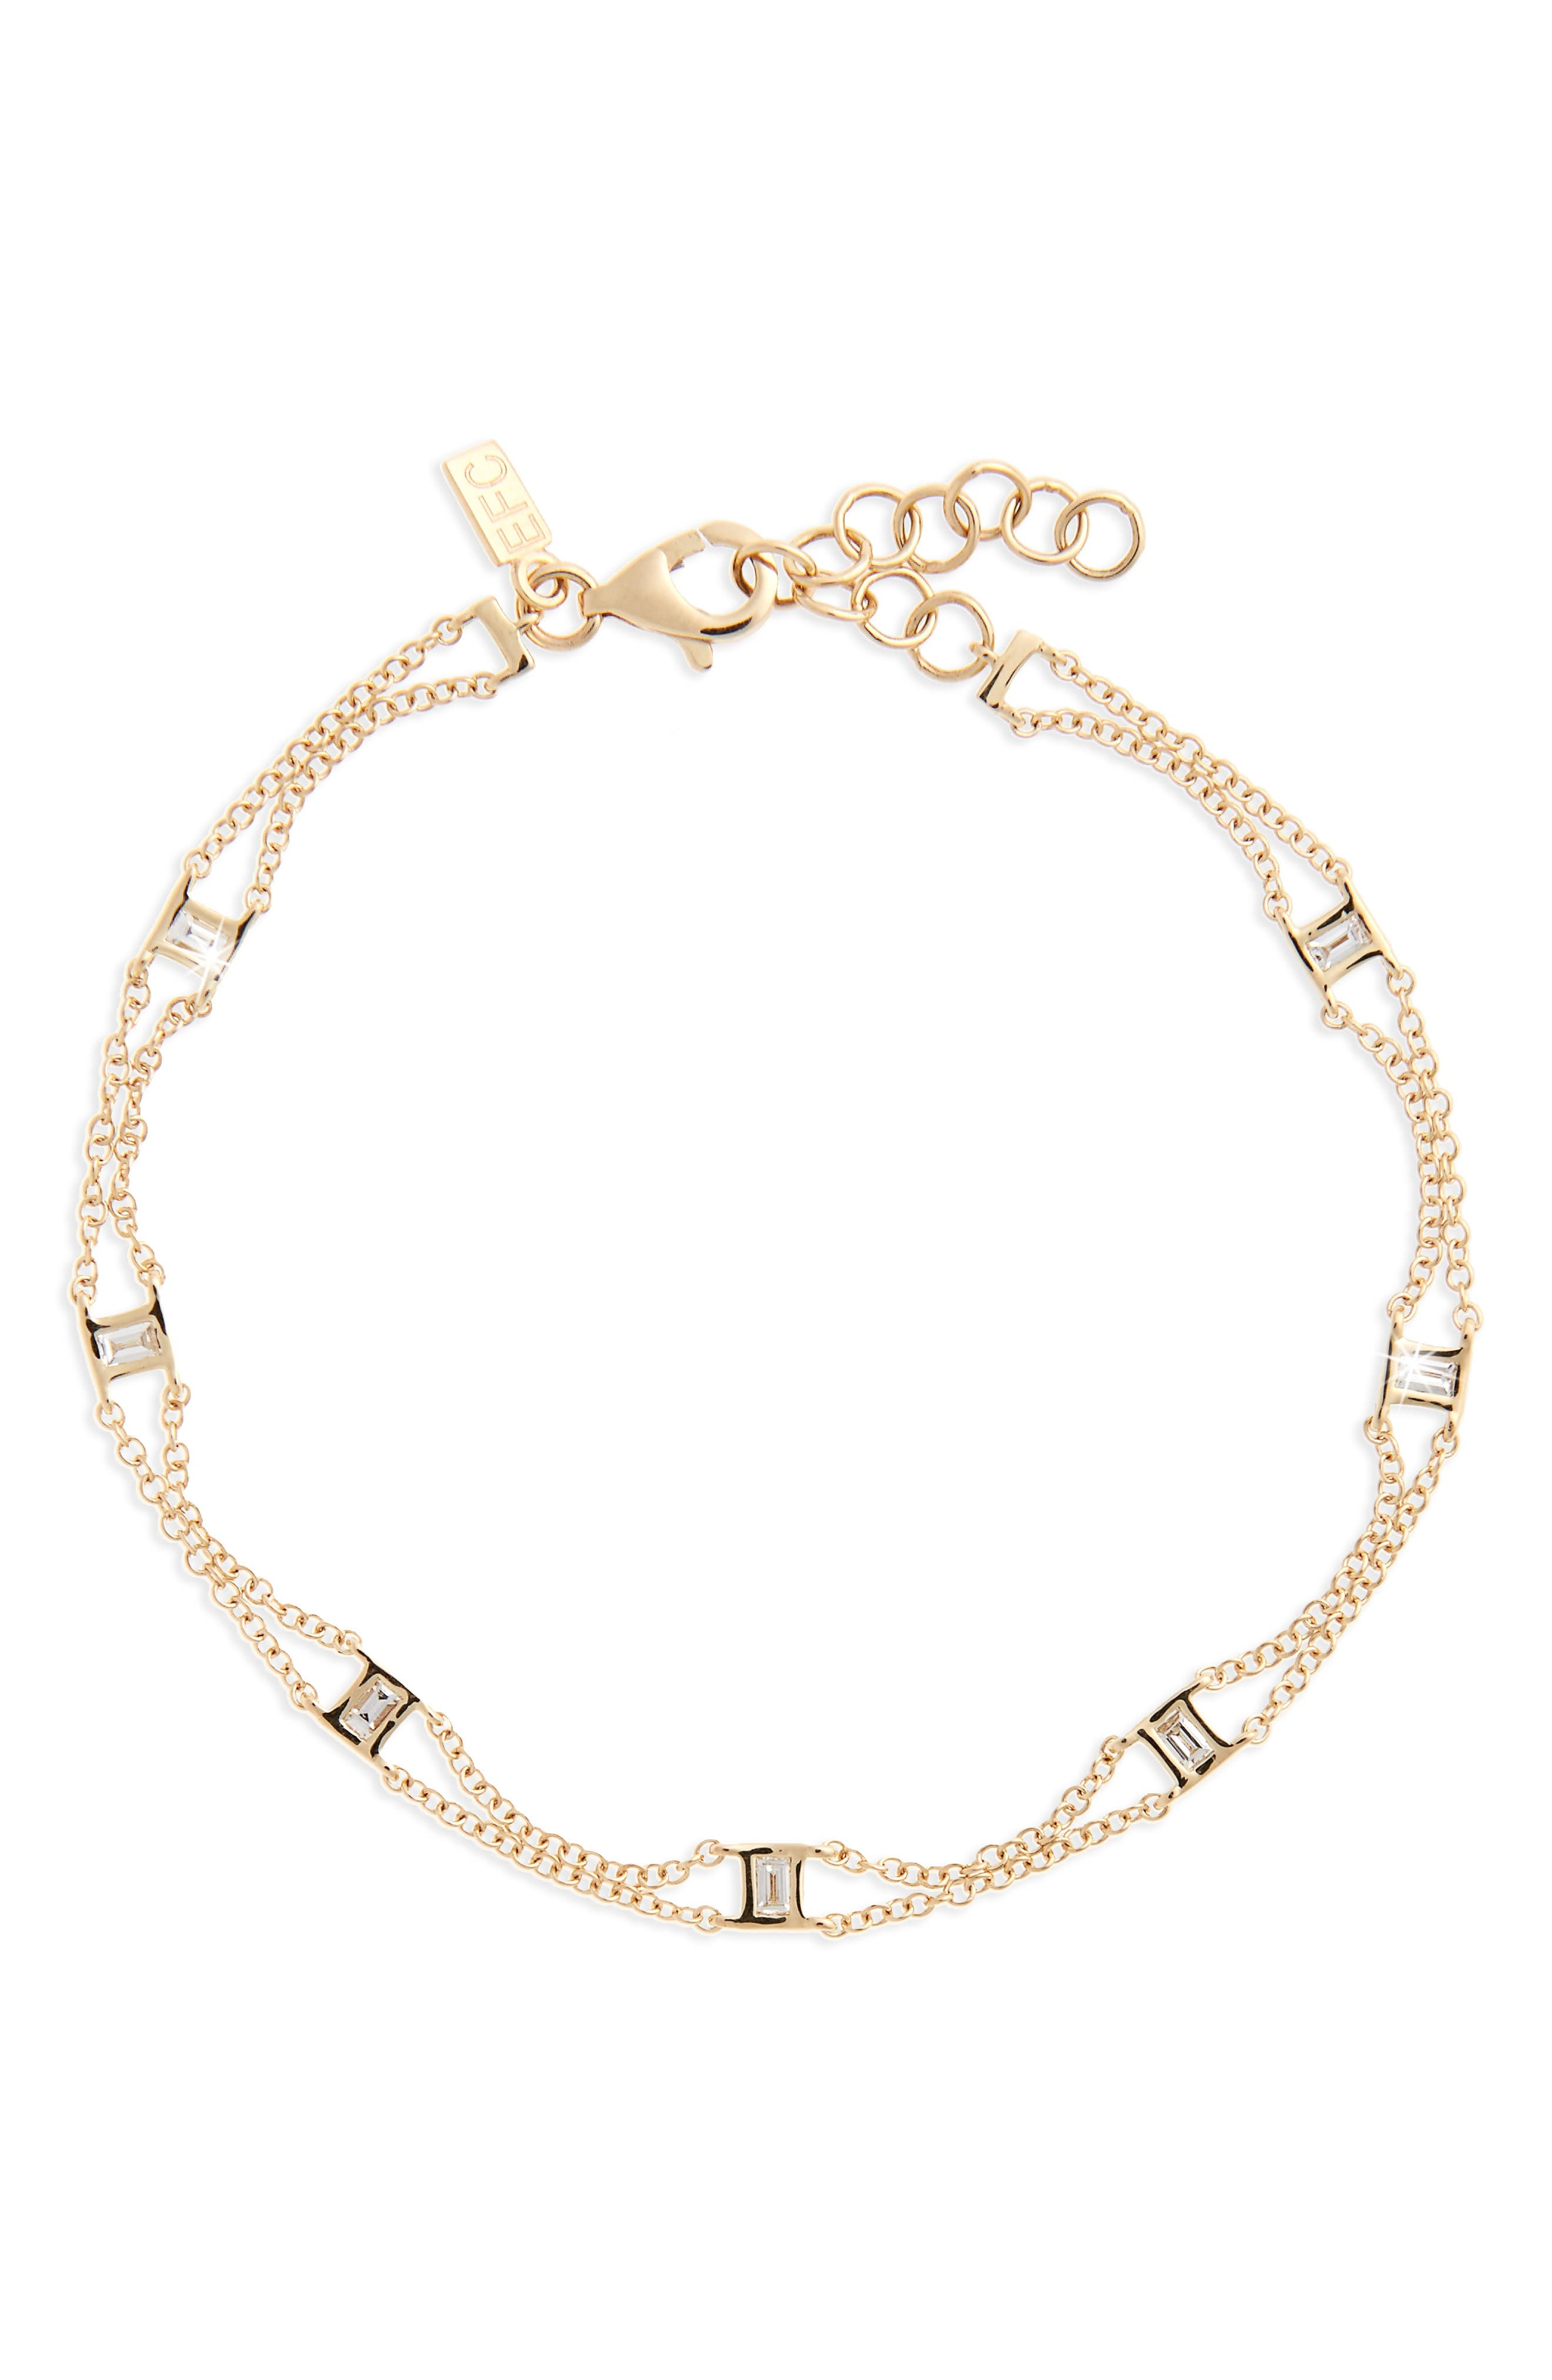 Main Image - EF COLLECTION Lucky 7 Baguette Chain Diamond Bracelet